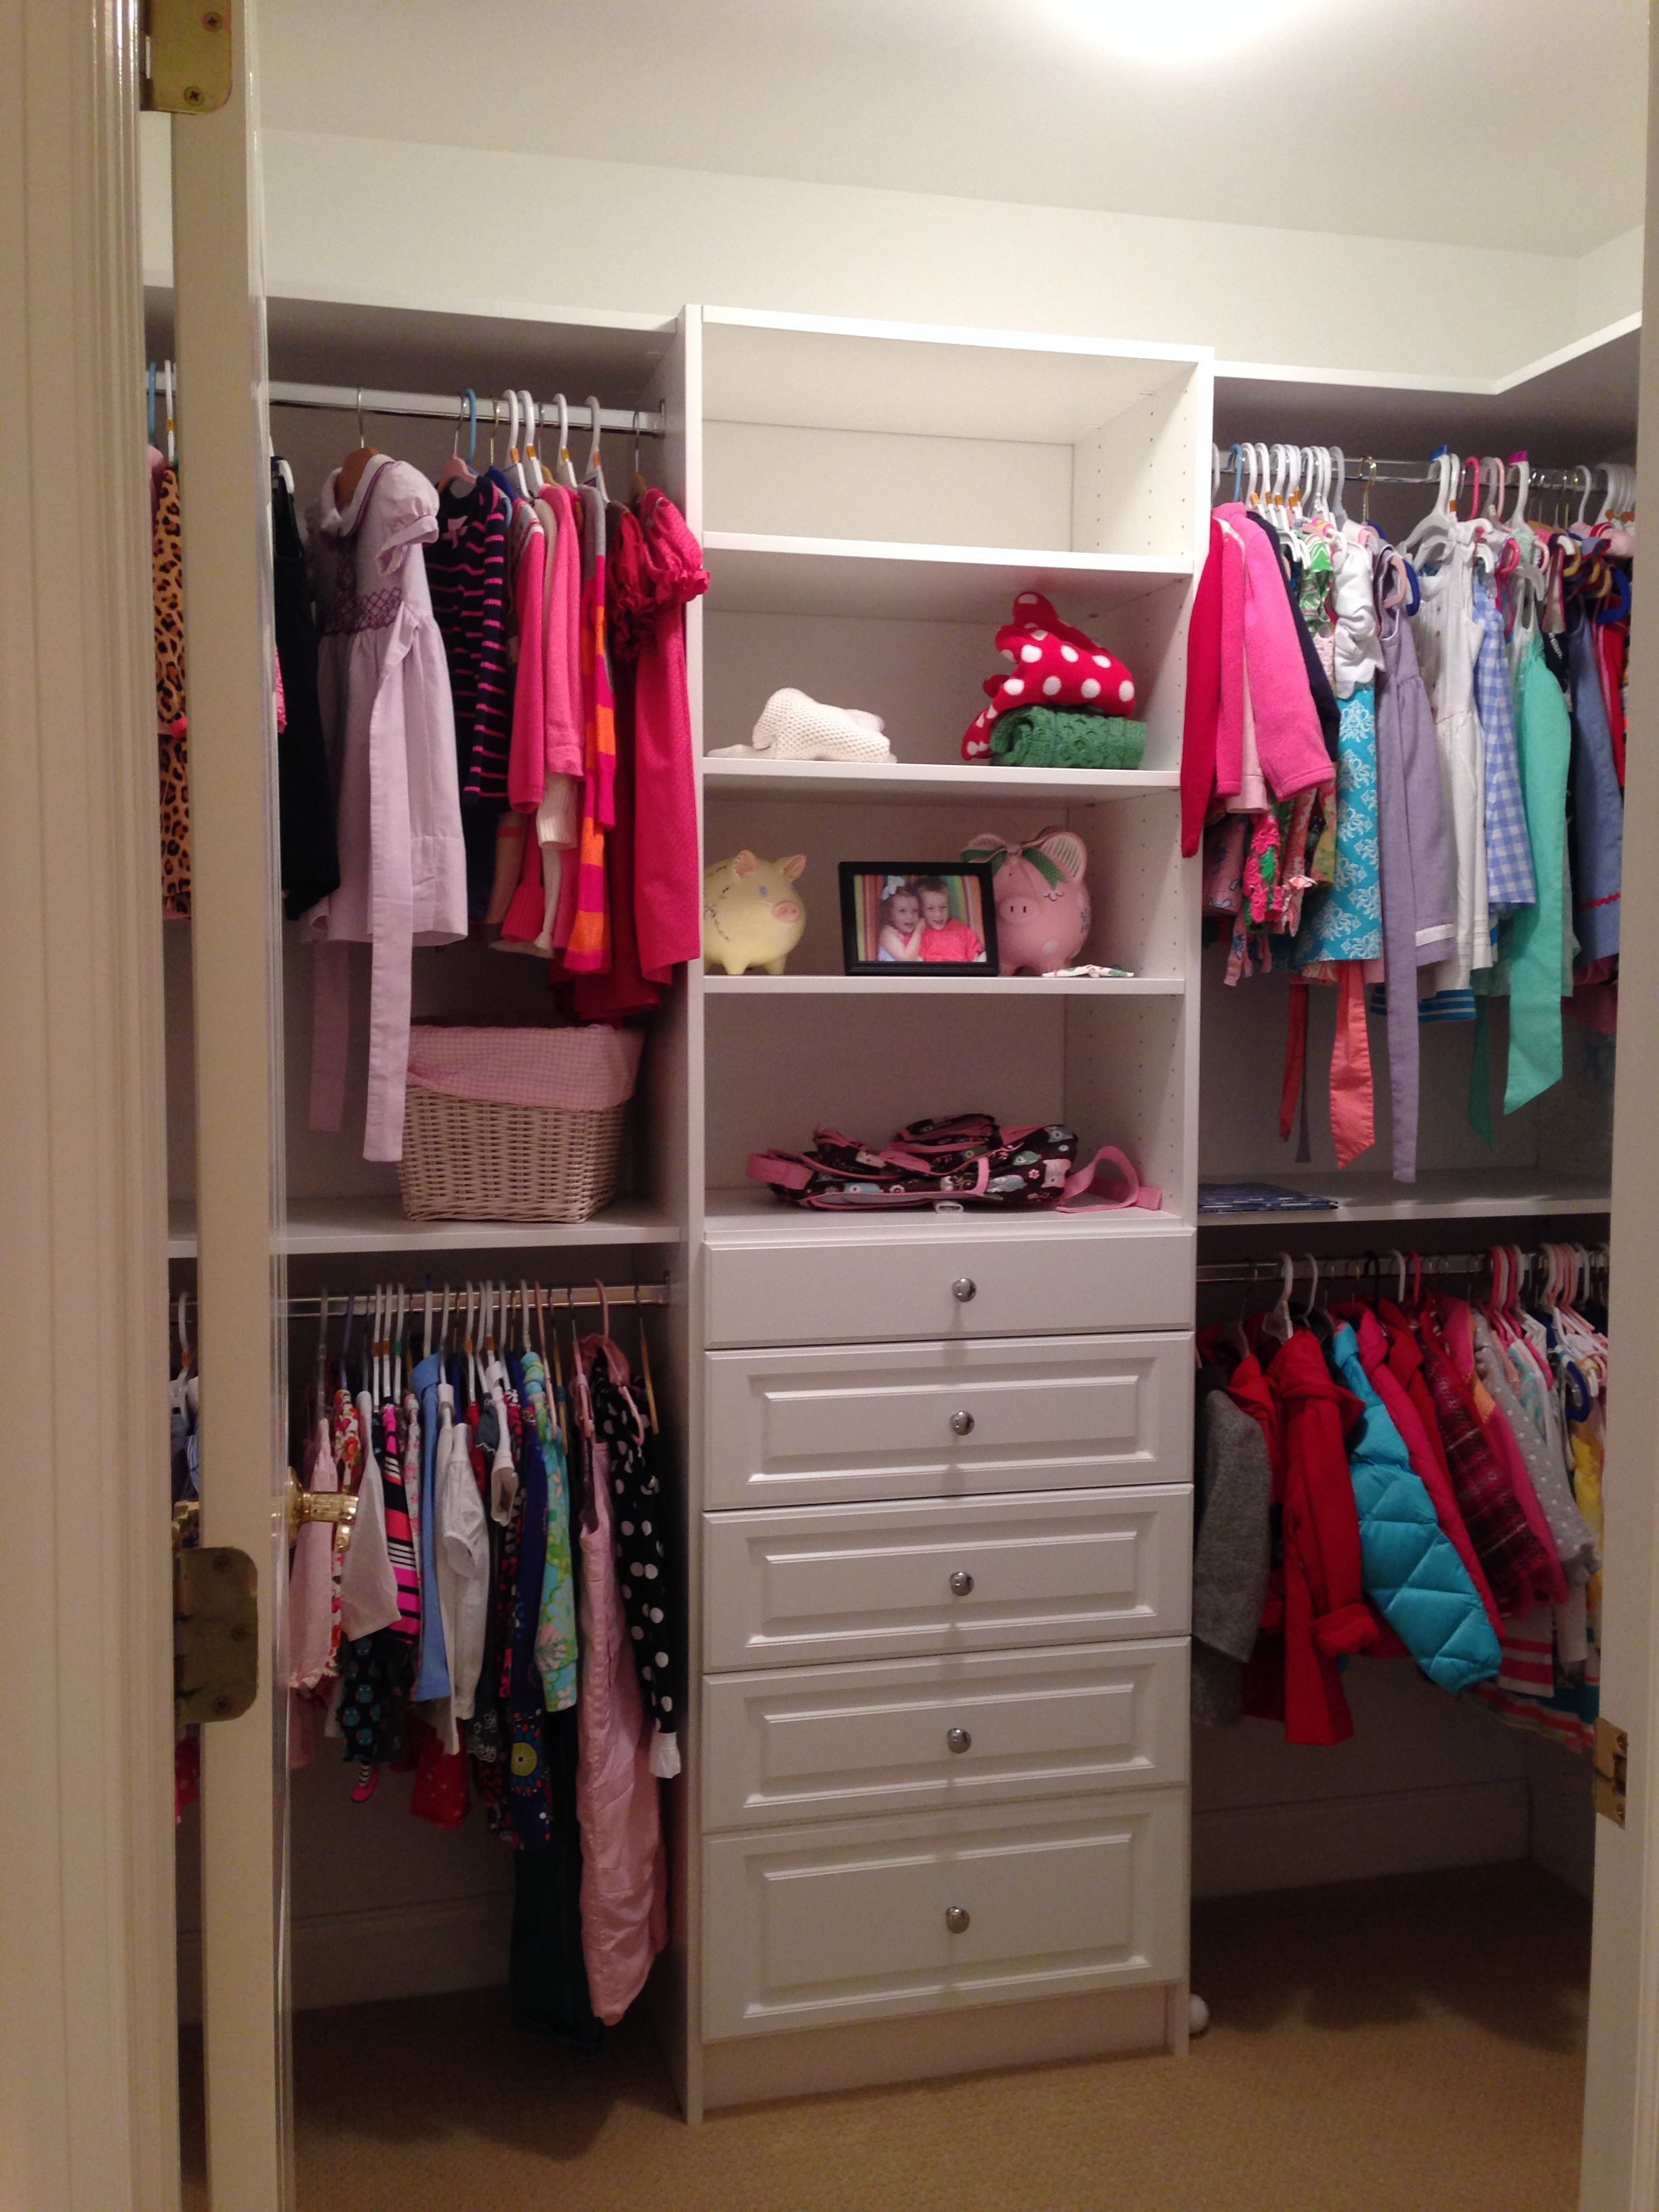 Walk In Bedroom Closet Designs 21 Small Walk In Closet Ideas And Organizer Designs  Closet